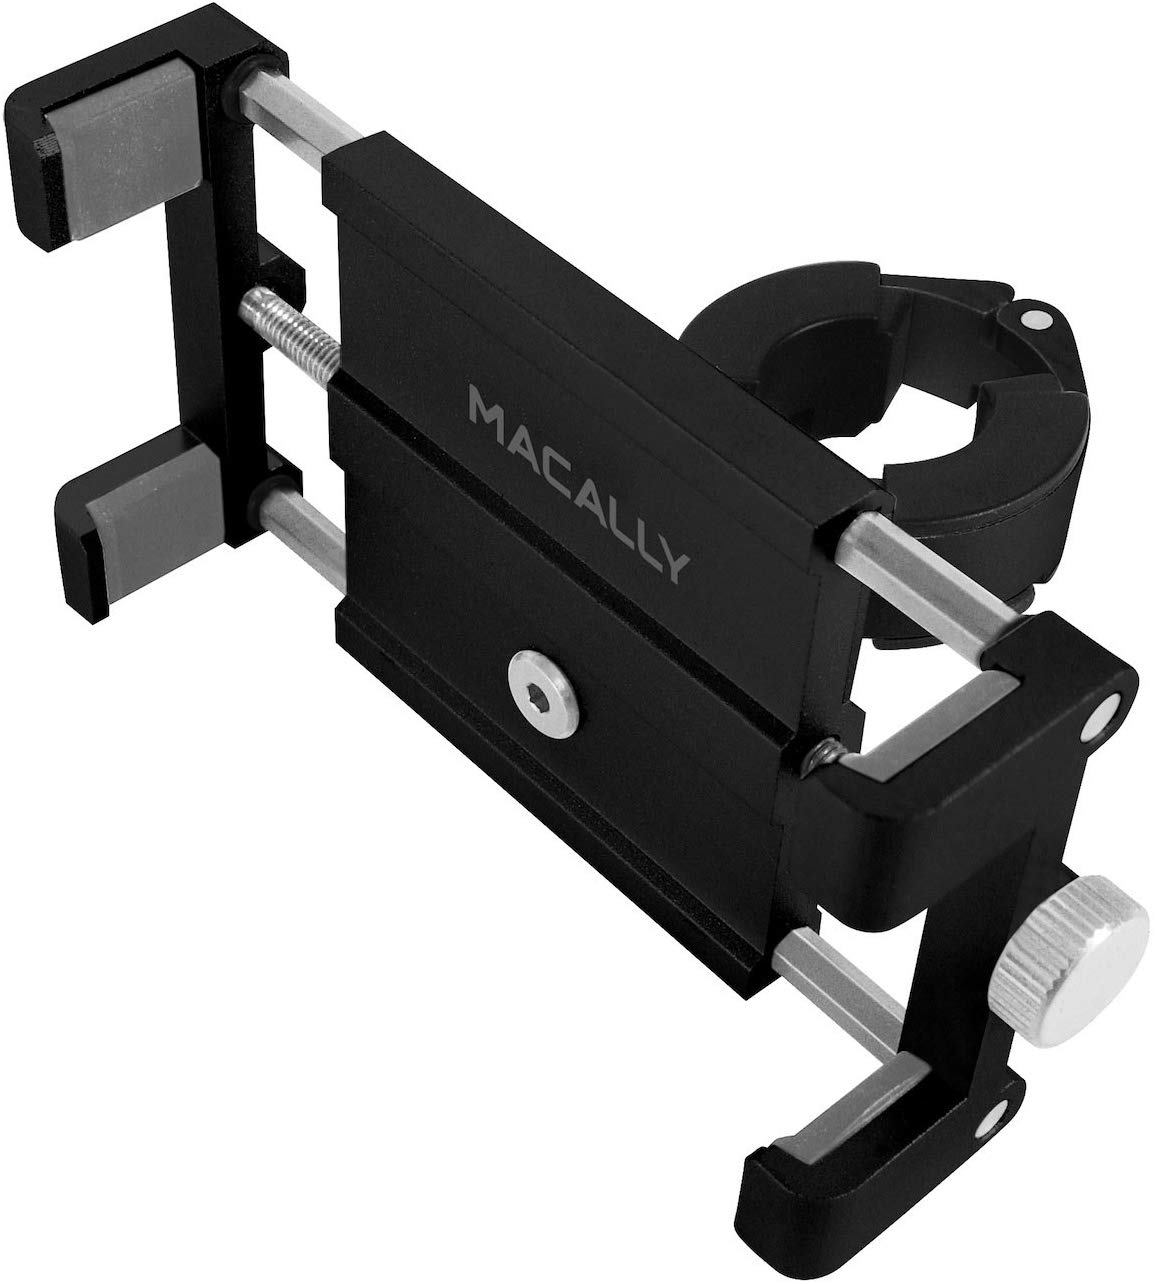 Macally Aluminum Bike Phone Mount Bicycle Holder on Handlebar for iPhone 11 Pro Max XS XR X 8 7 Plus 6S 6 SE, Samsung S10 S10E S9 S8 S7 S6 Edge Note & Other Mobile Smartphone Devices (BIKEMOUNT)